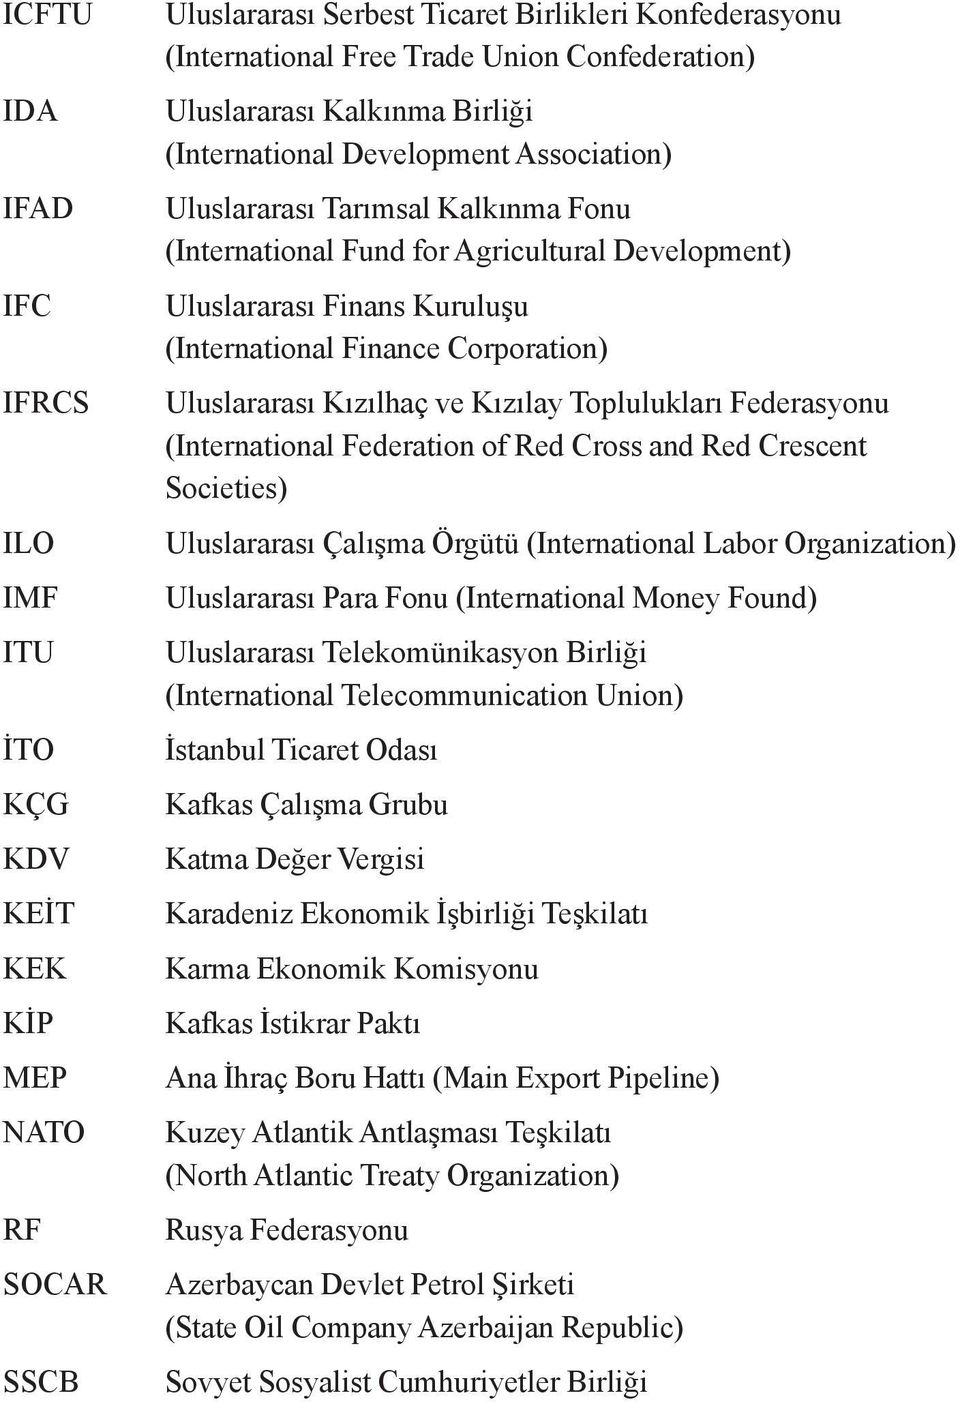 Corporation) Uluslararası Kızılhaç ve Kızılay Toplulukları Federasyonu (International Federation of Red Cross and Red Crescent Societies) Uluslararası Çalışma Örgütü (International Labor